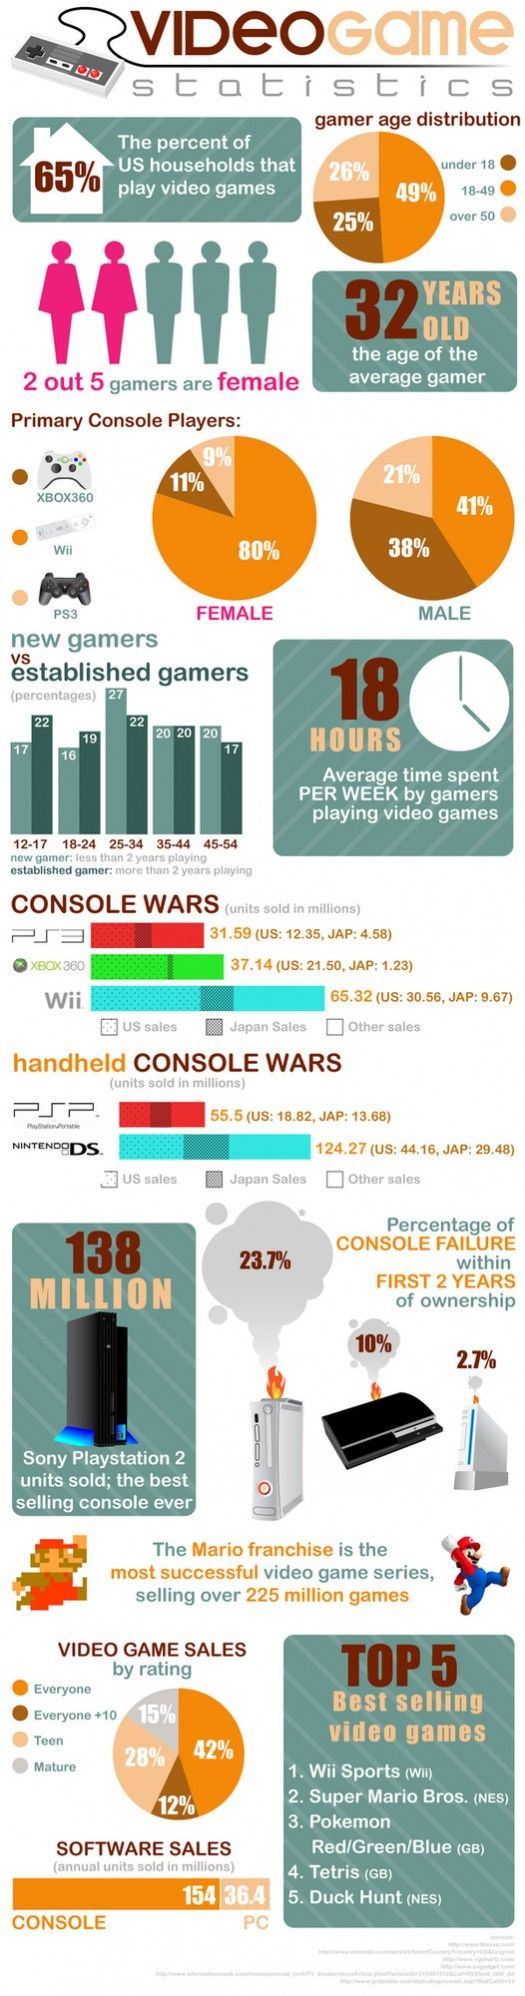 #videogames #infographic